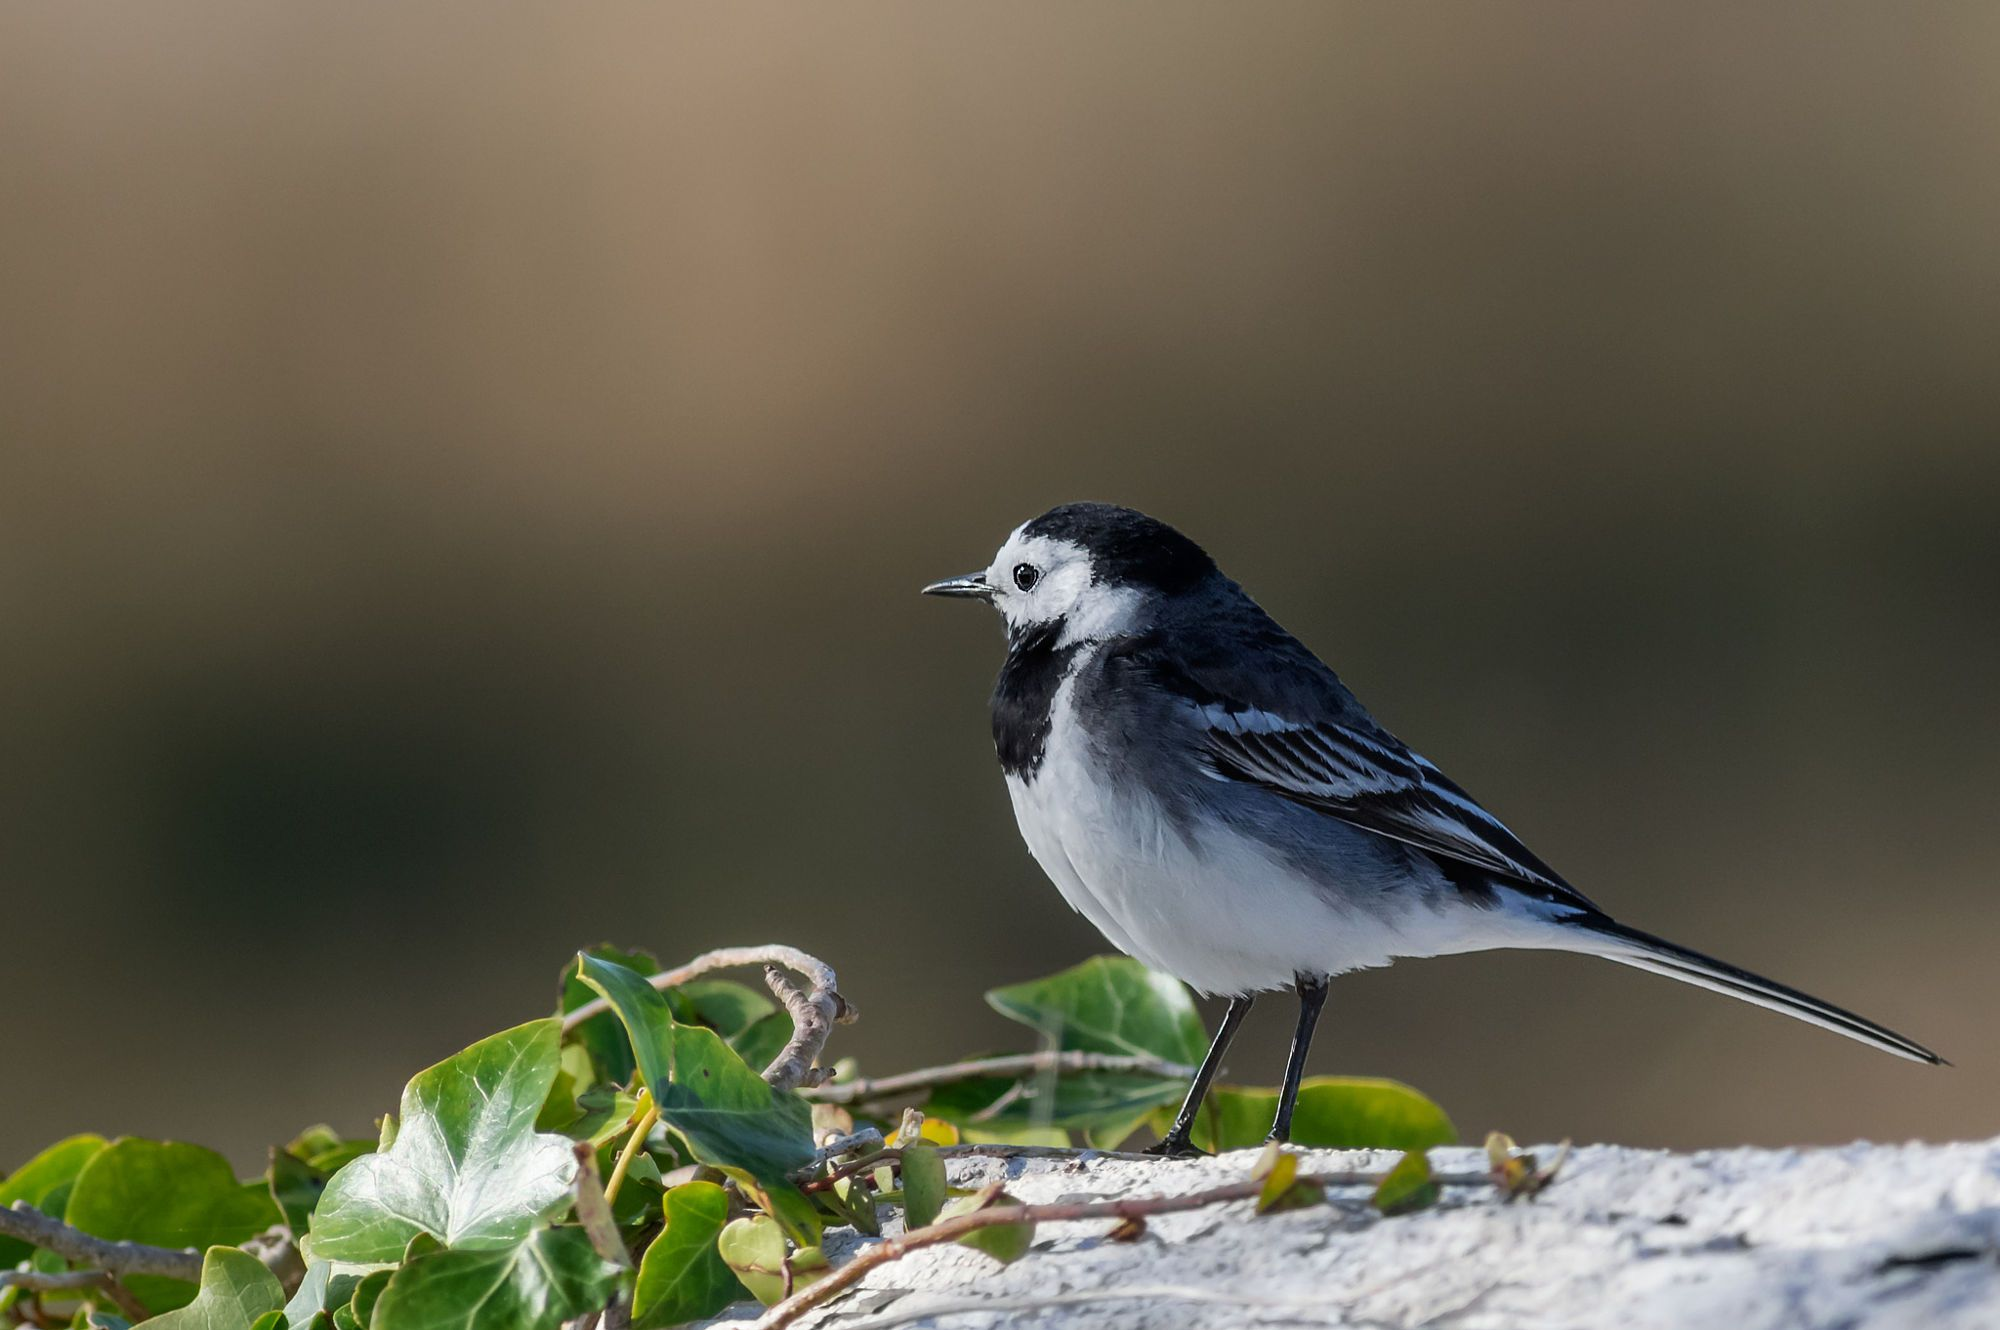 Pied Wagtail by Piotr Galus on 500px